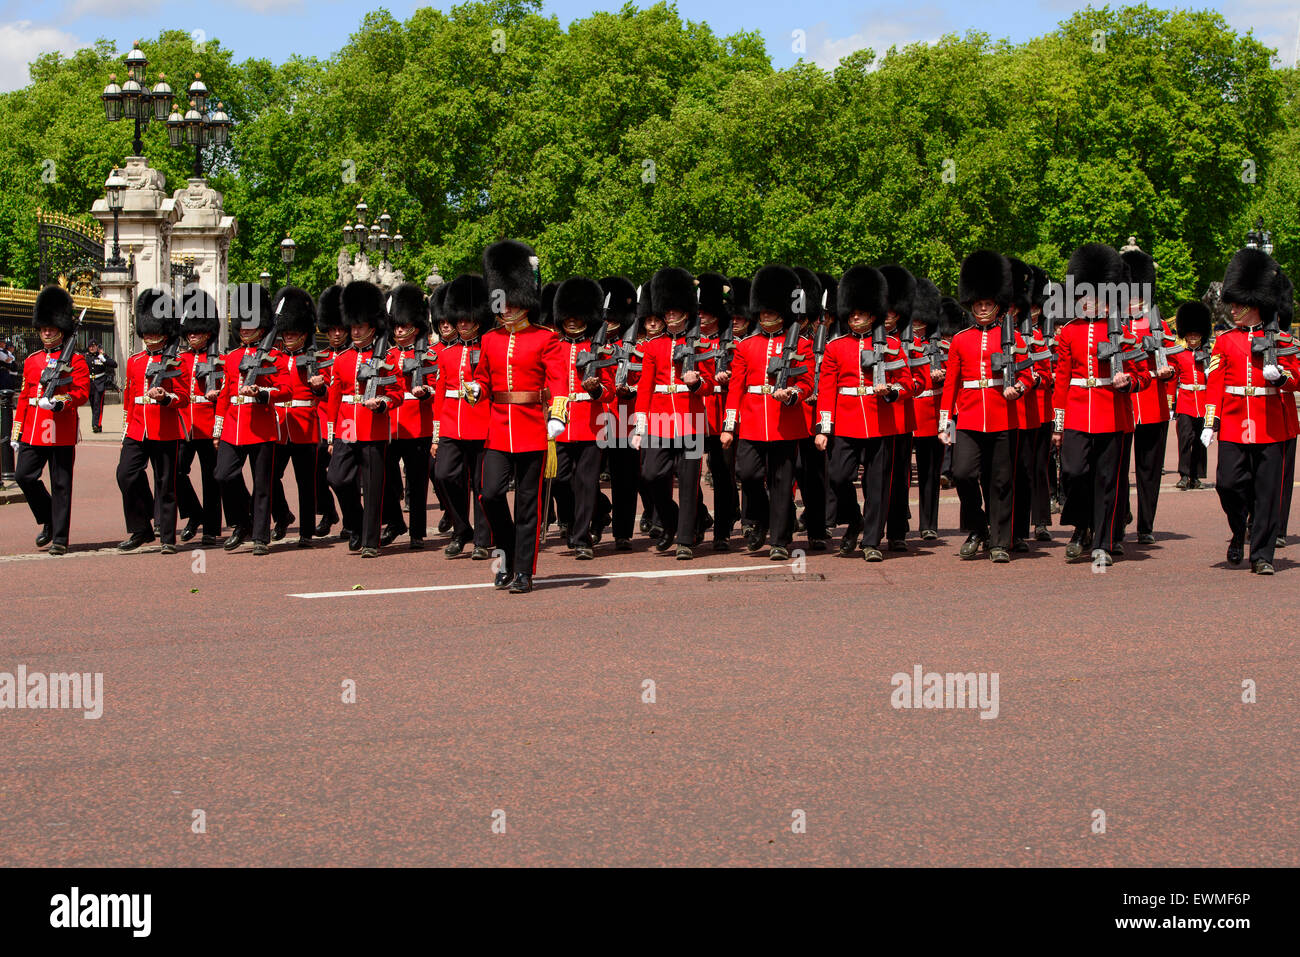 Changing of the Guard, Buckingham Palace, London, England, United Kingdom - Stock Image